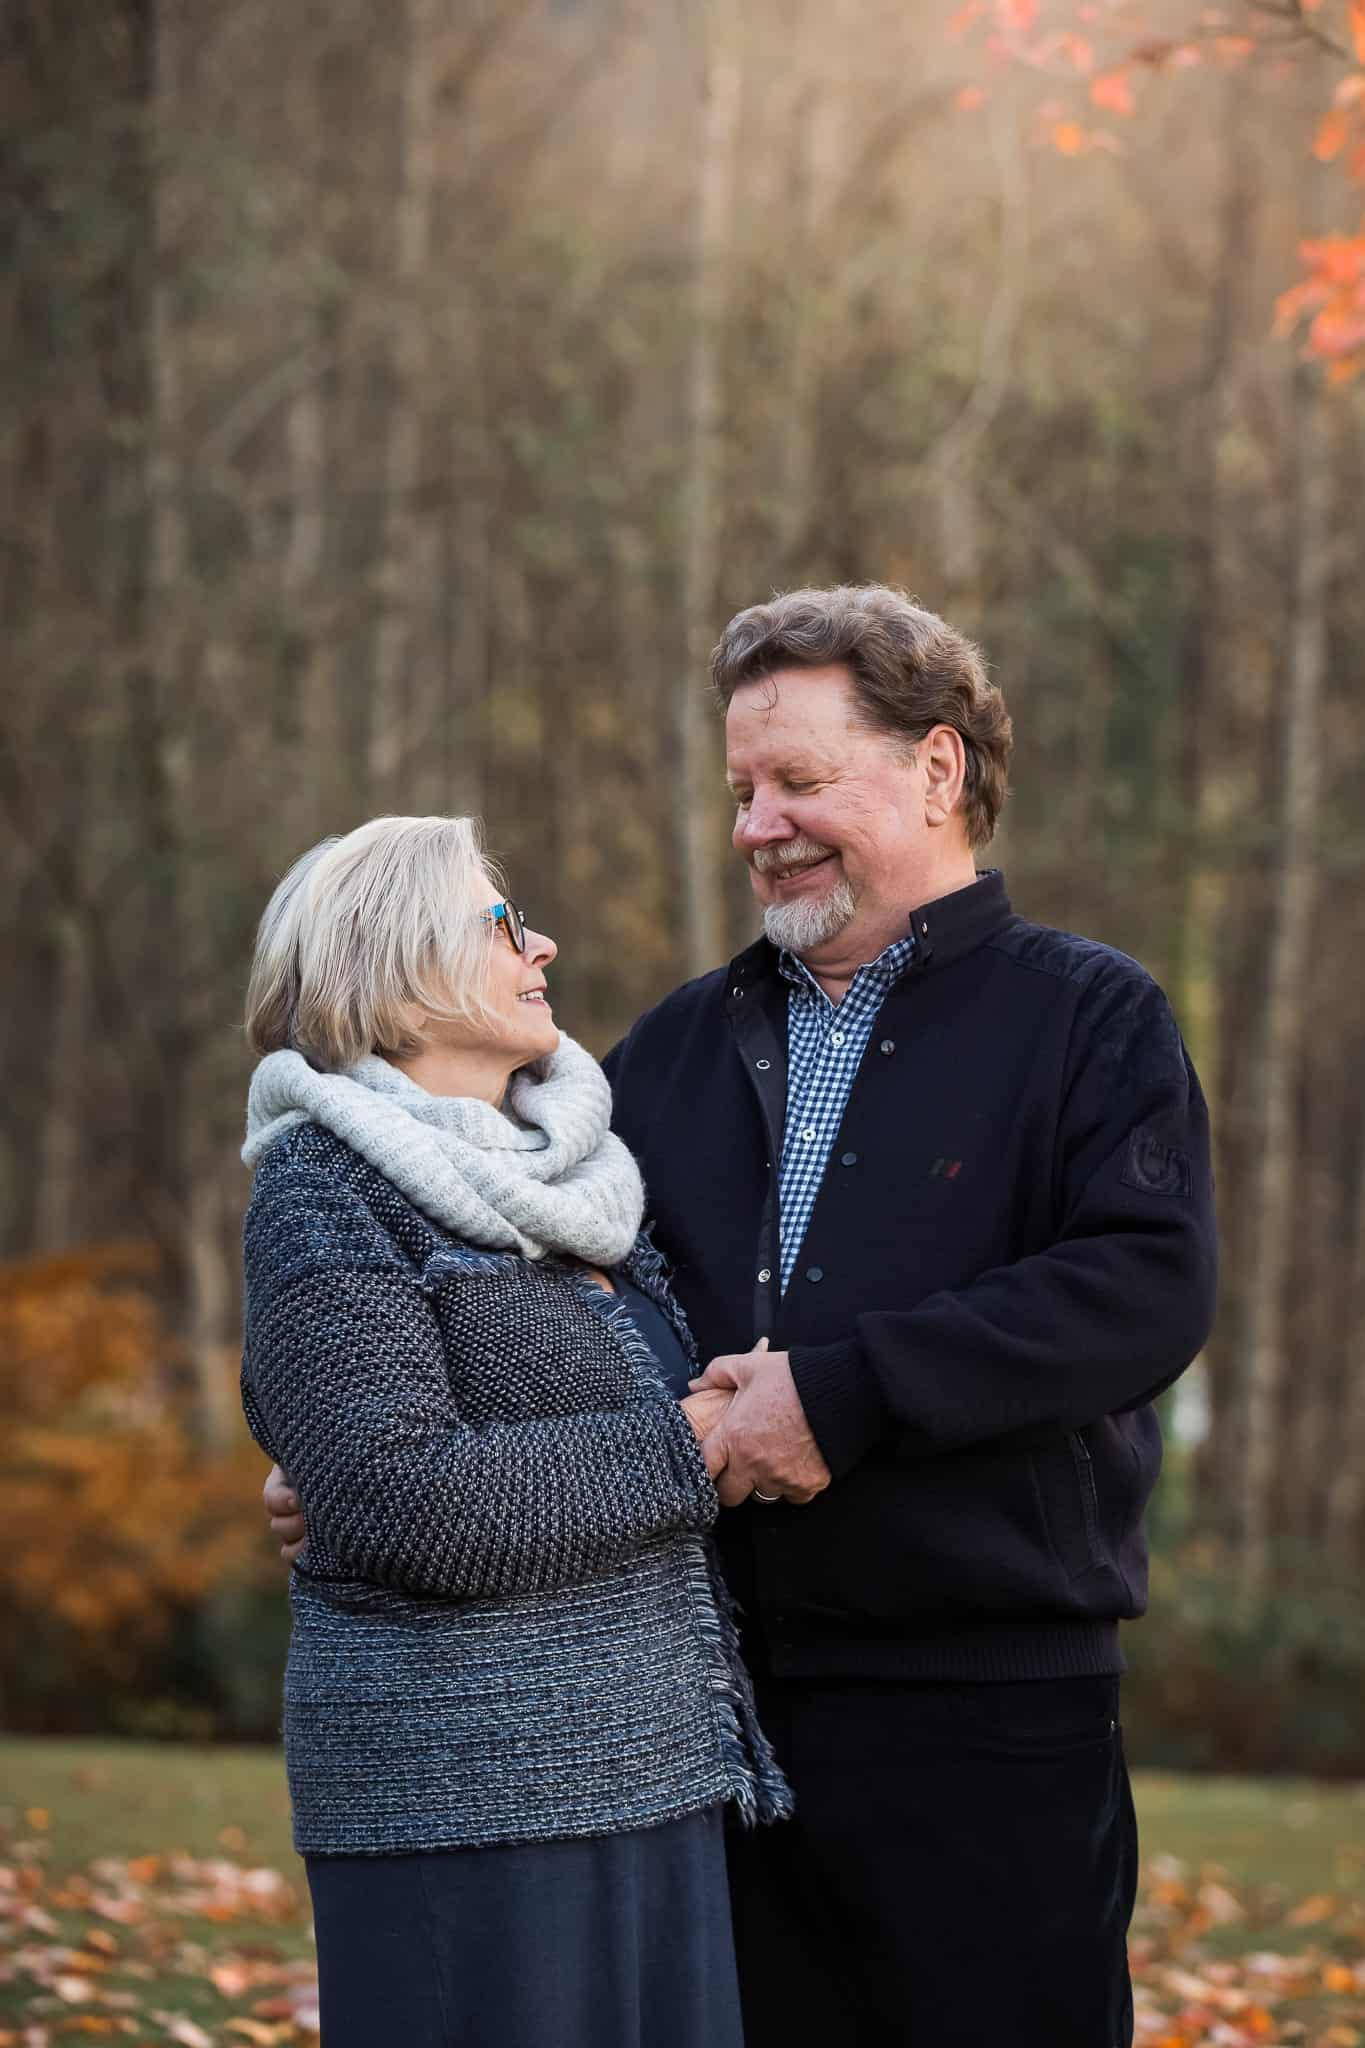 older couple holding hands and smiling at each other